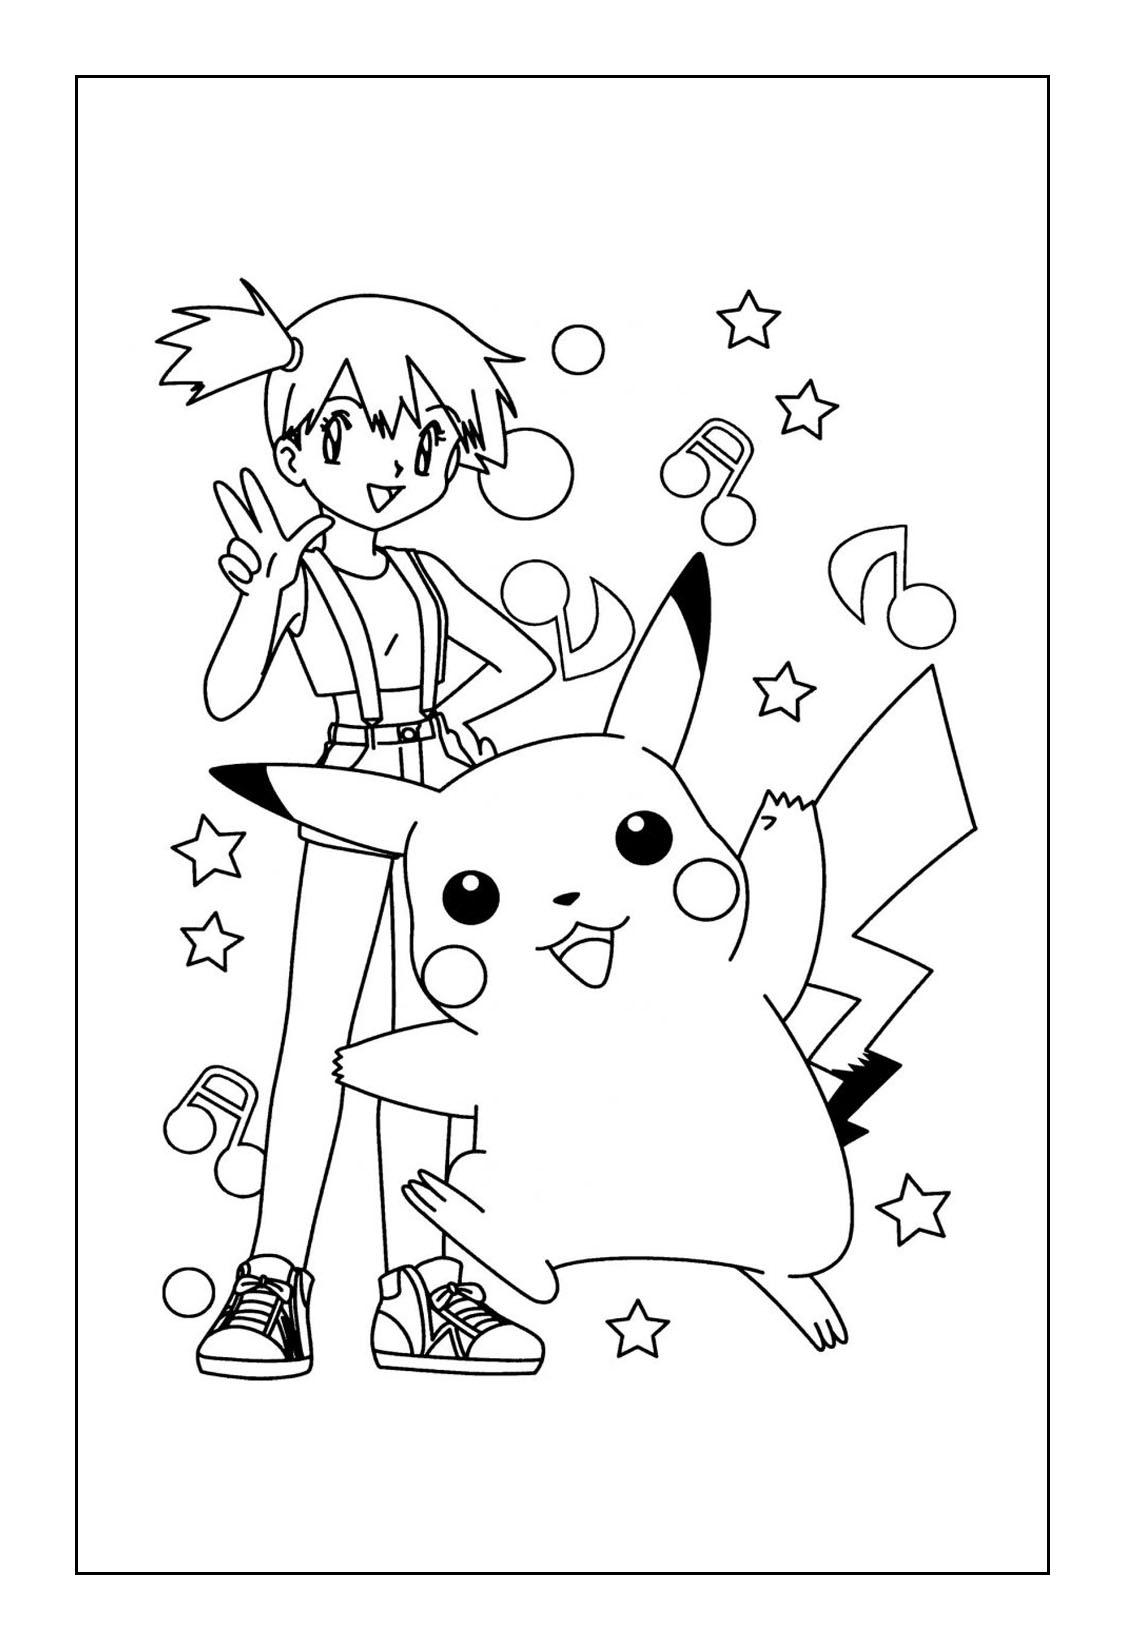 Pikachu Coloring Pages - Pikachu and Misty